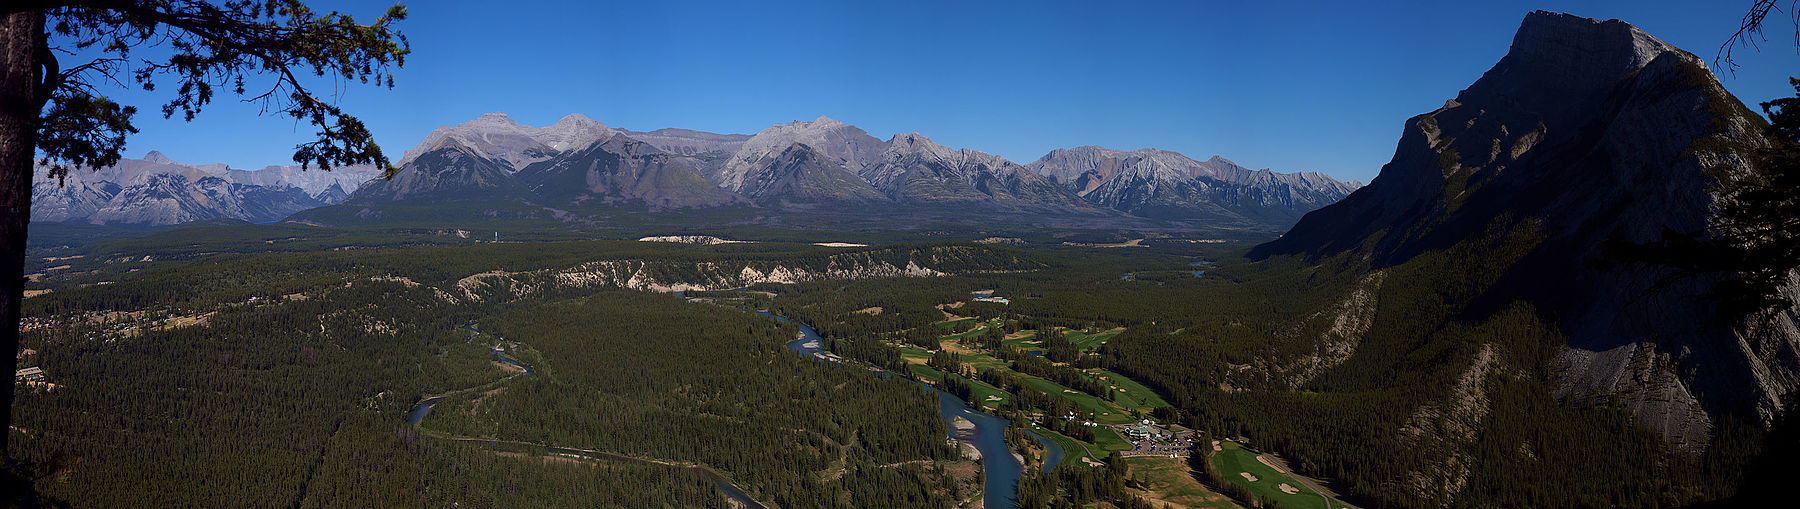 Banff National Park - Mount Rundle Panorama - 100 MEGAPixel (6093891258) (2).jpg